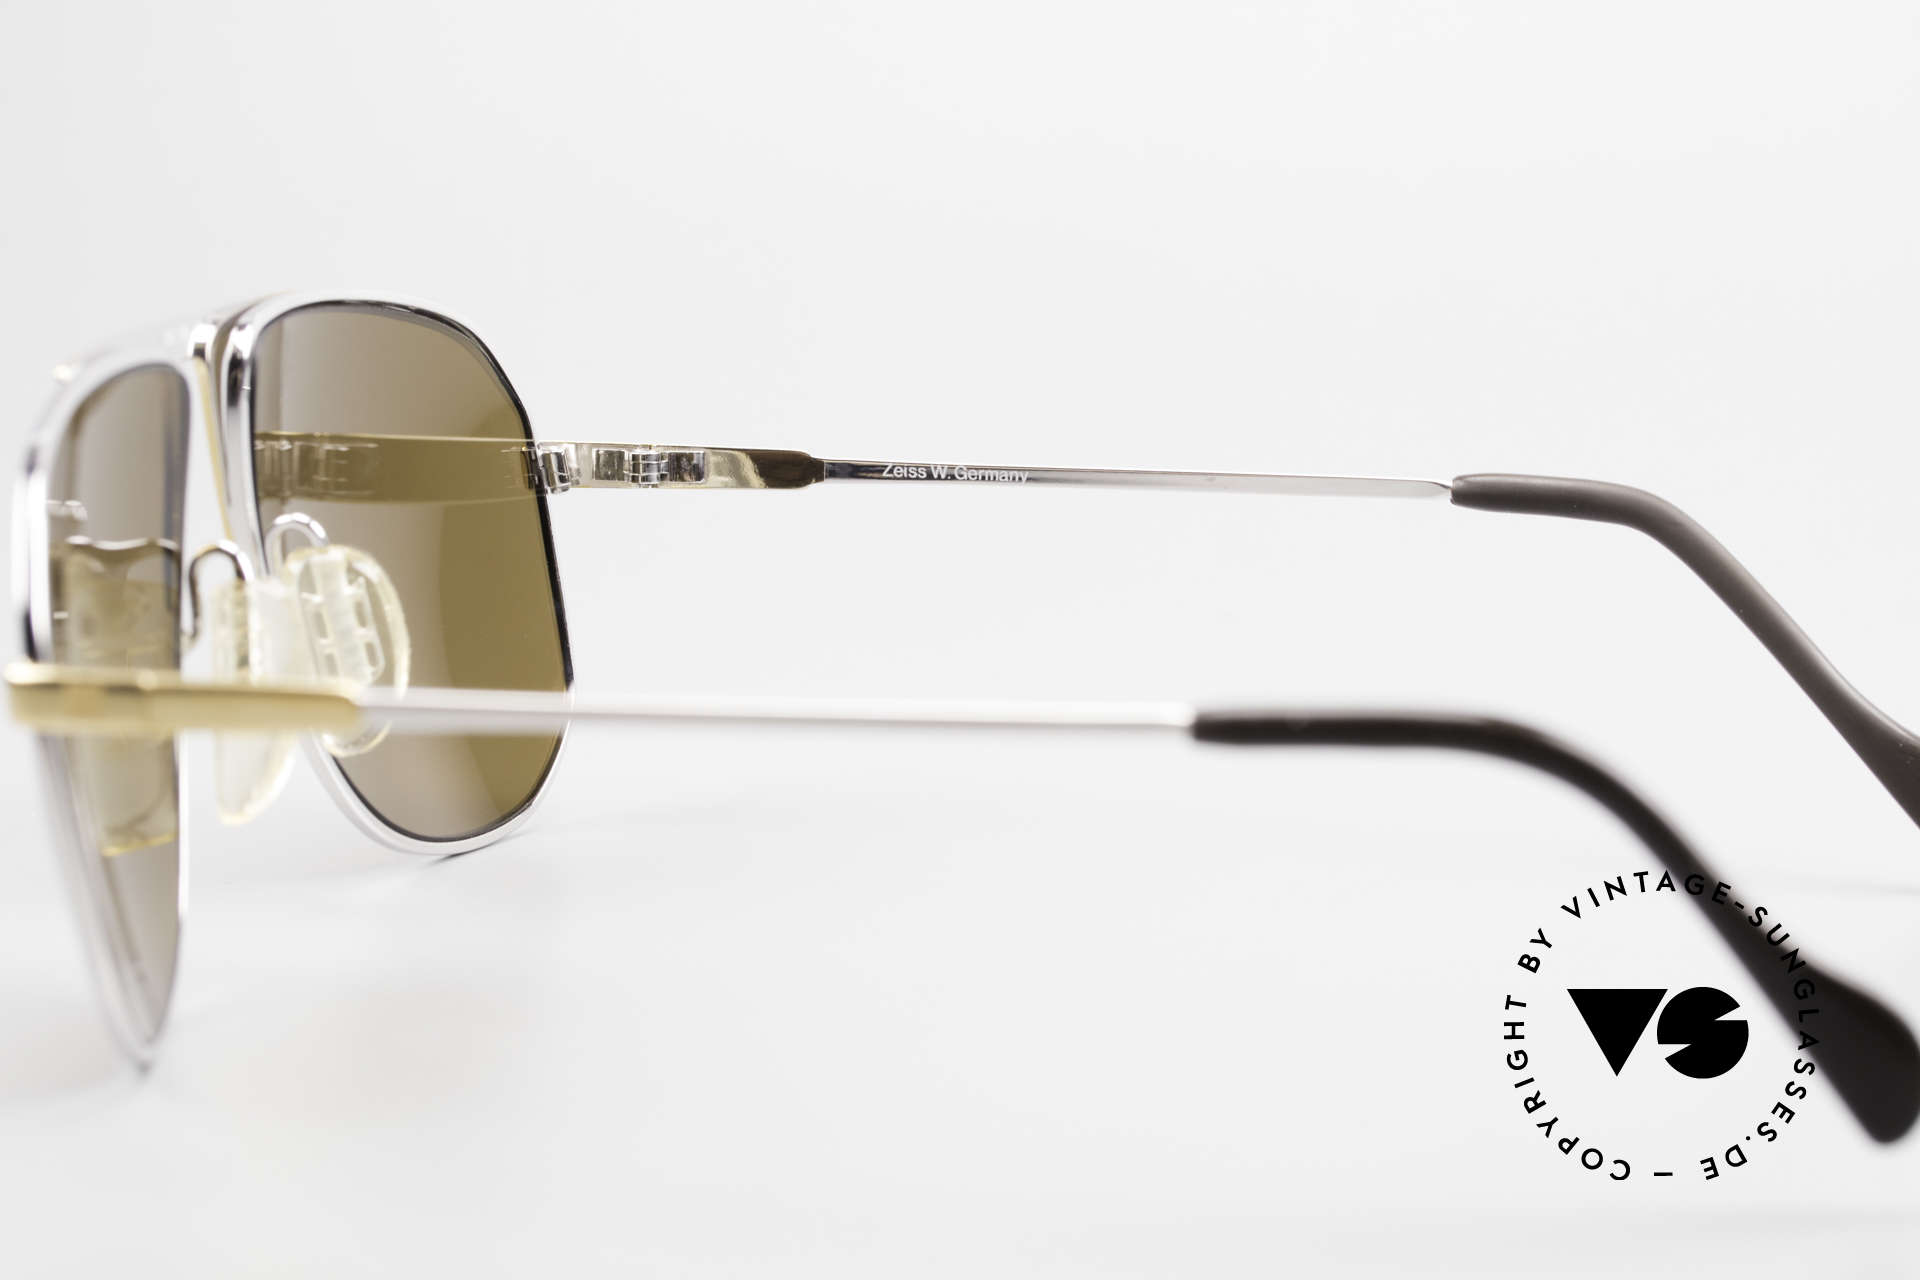 Zeiss 5871 80's Men's Quality Sunglasses, NO RETRO shades, but a genuine 35 years old original!, Made for Men